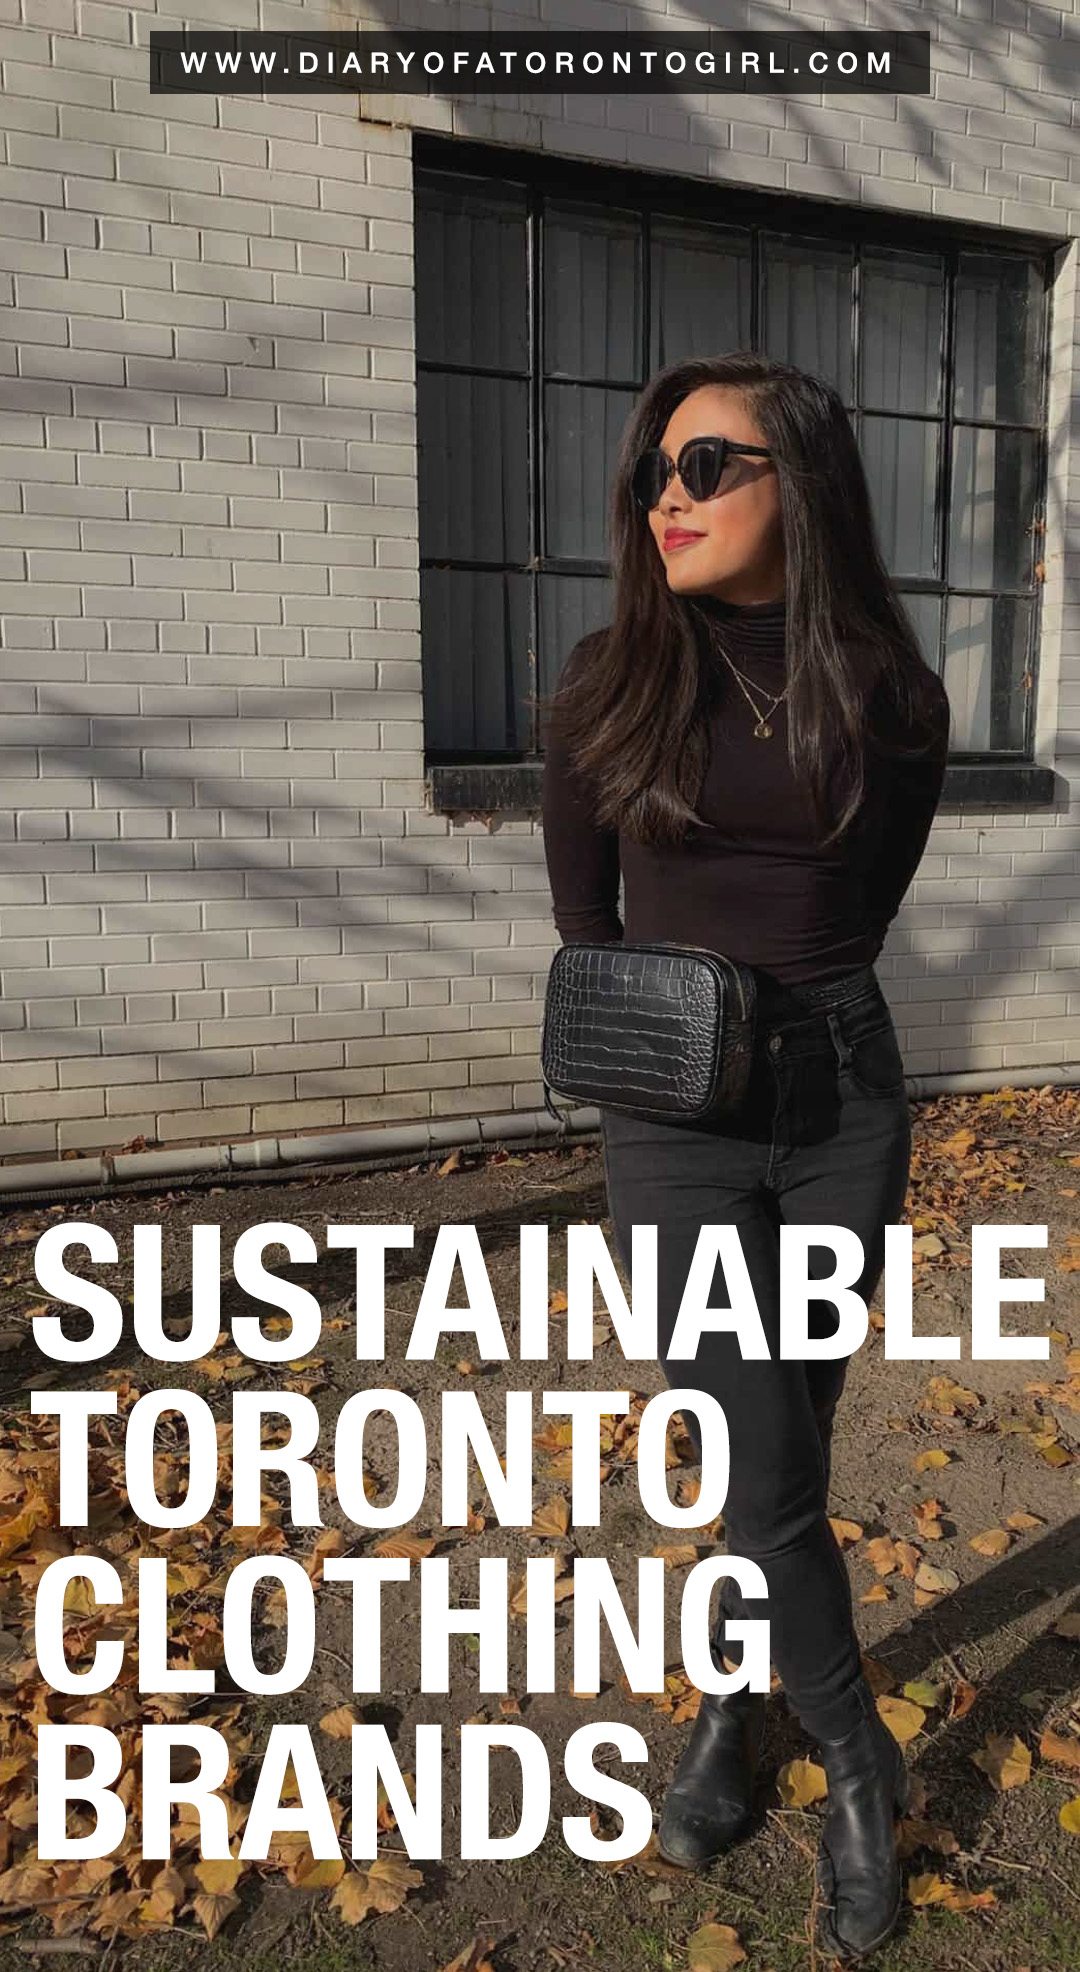 Sustainable and ethical Toronto clothing brands to shop from, if you're looking to support local Canadian fashion companies!